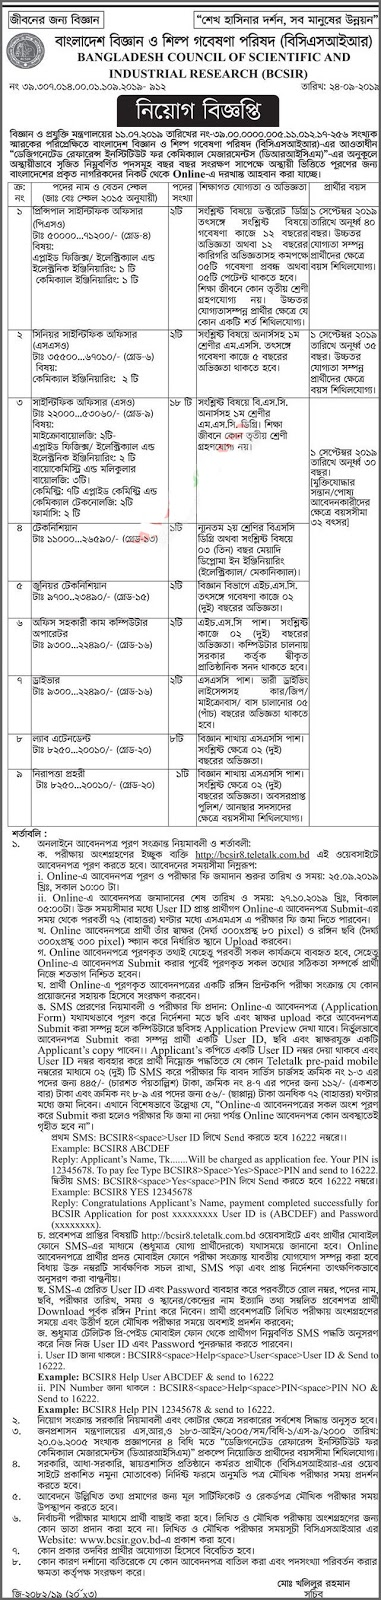 Bangladesh Council of Scientific and Industrial Research-BCSIR Job Circular 2019